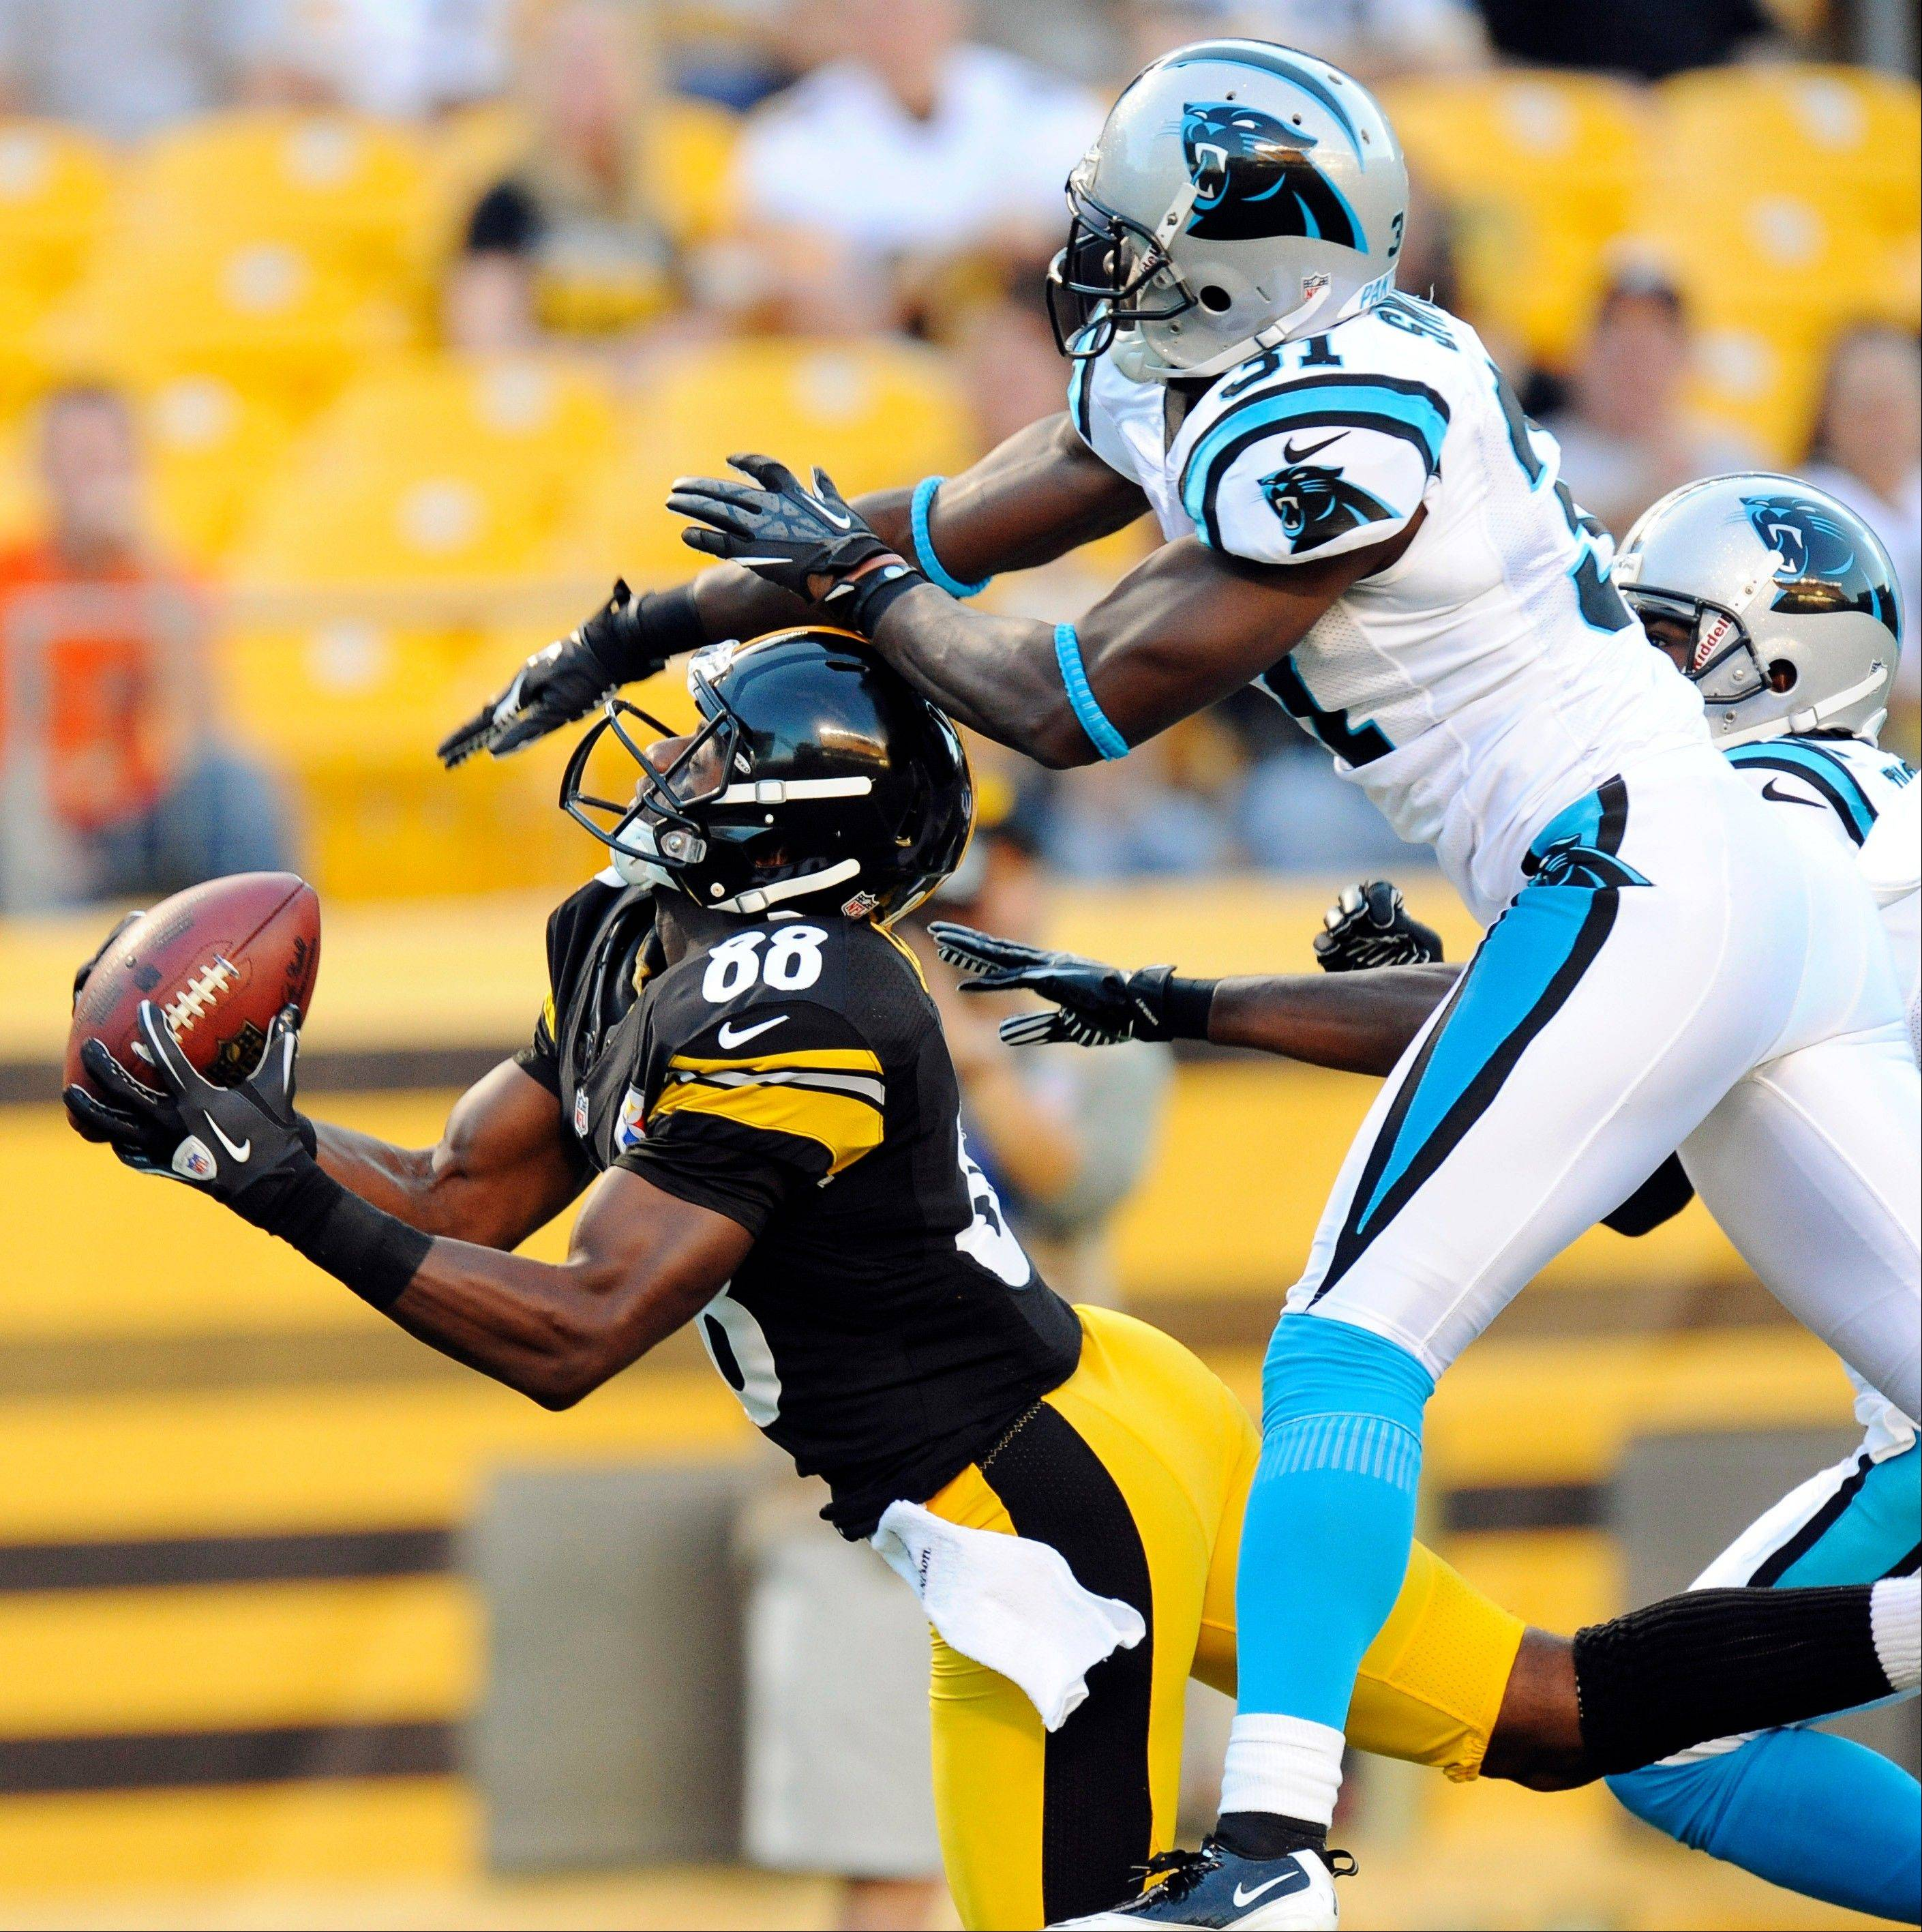 Pittsburgh Steelers wide receiver Emmanuel Sanders catches a throw from Charlie Batch for a touchdown against Carolina in the first quarter of their preseason game Thursday in Pittsburgh.